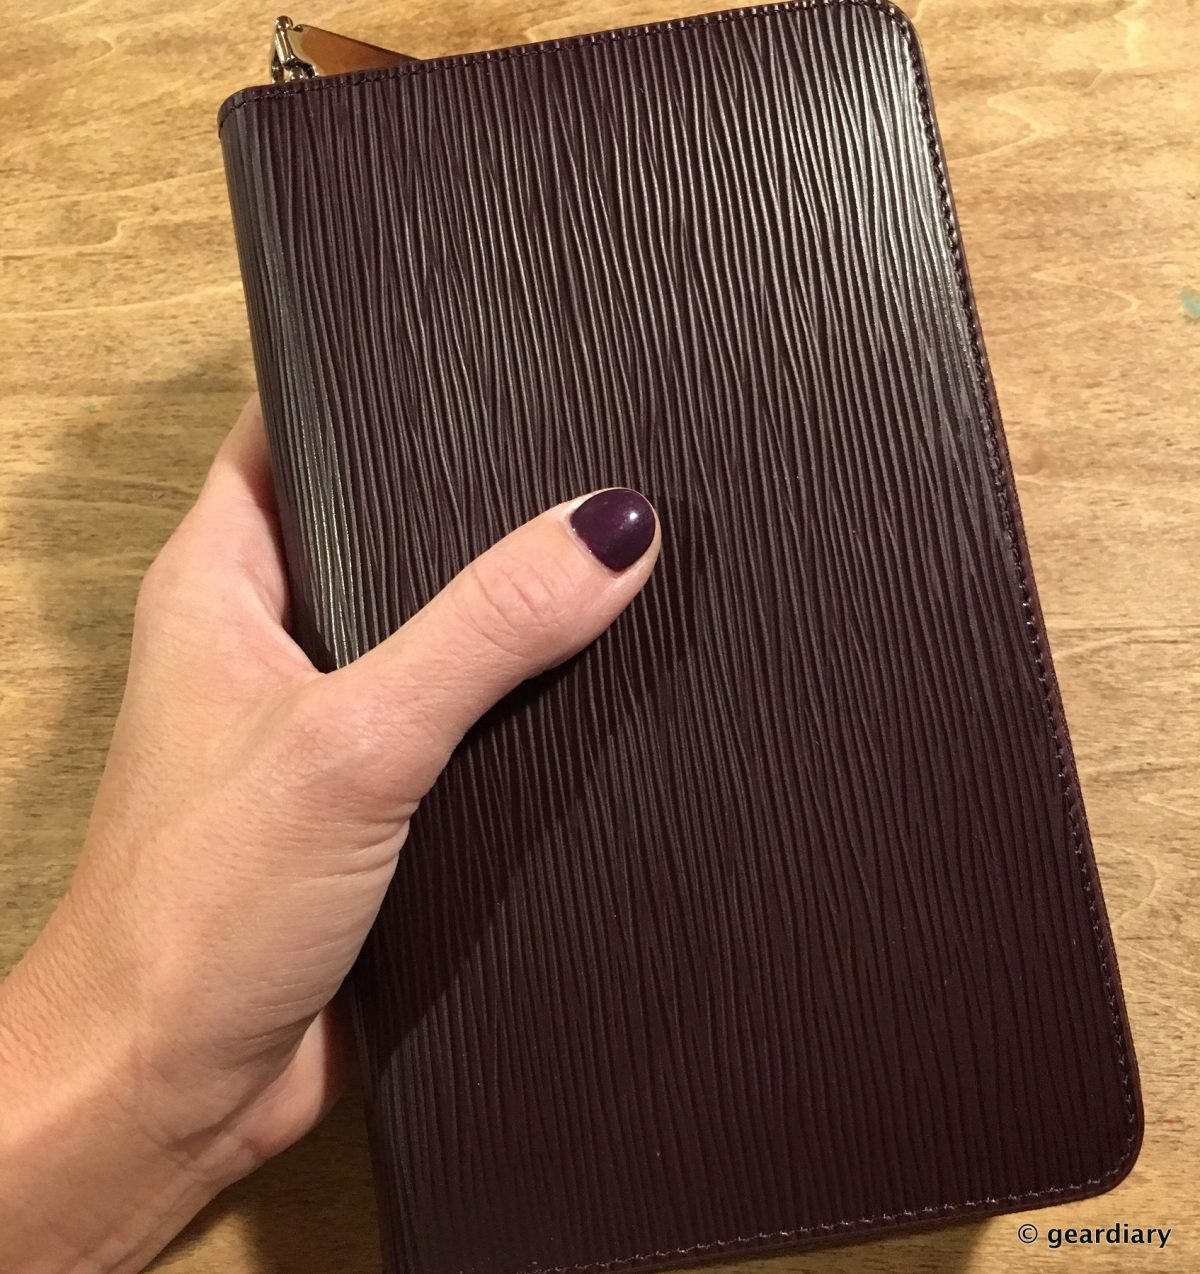 GearDiary Beyzacases Tule Leather Wallet: Carry Your Smartphone in One of the Classiest Wallets Yet